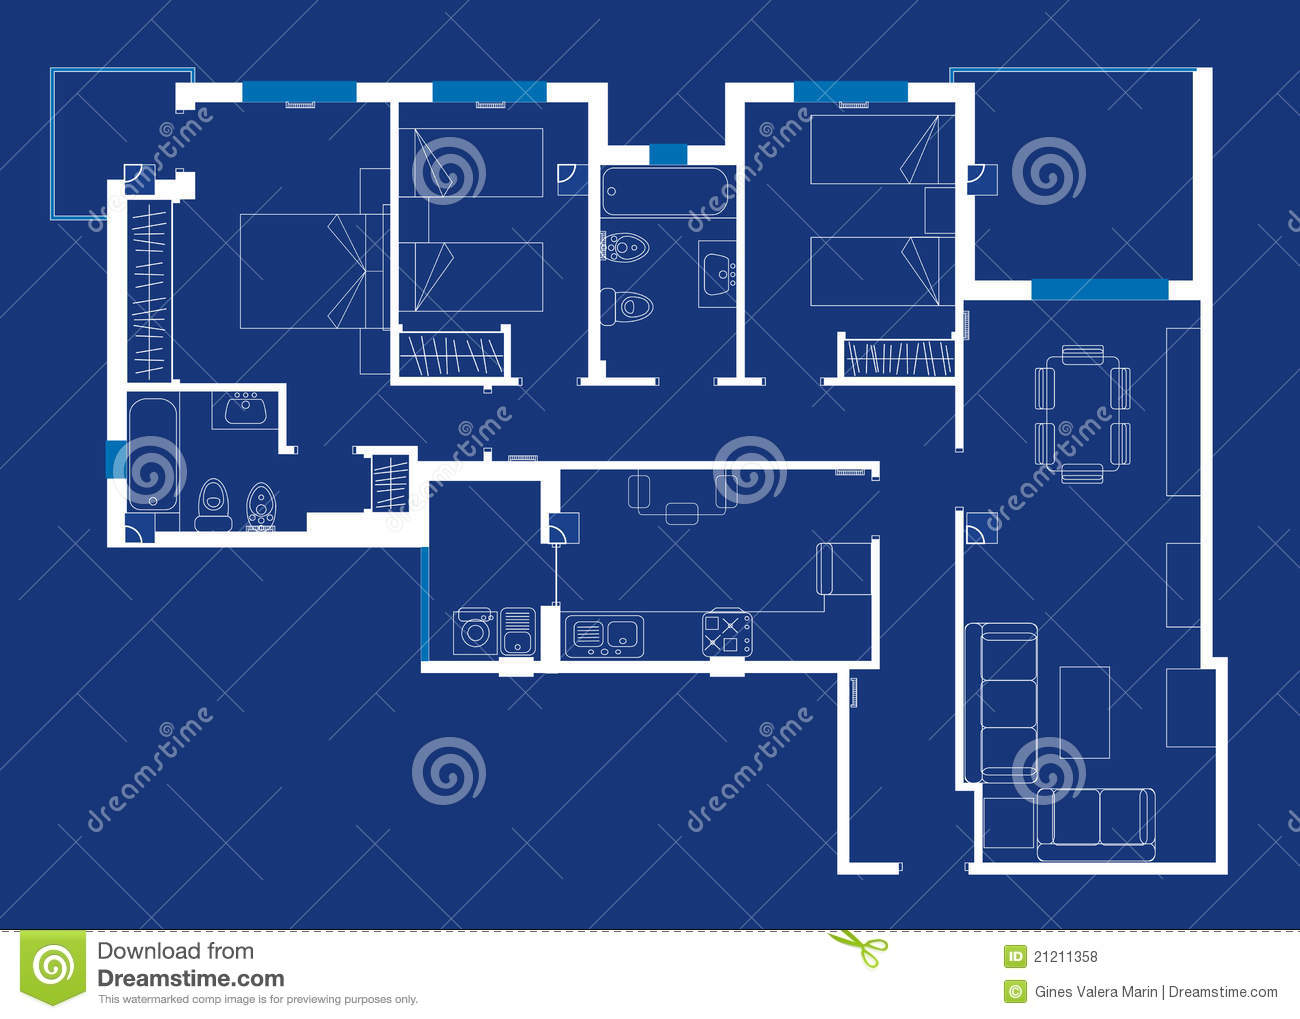 House blueprint royalty free stock photos image 21211358 for House blueprint images